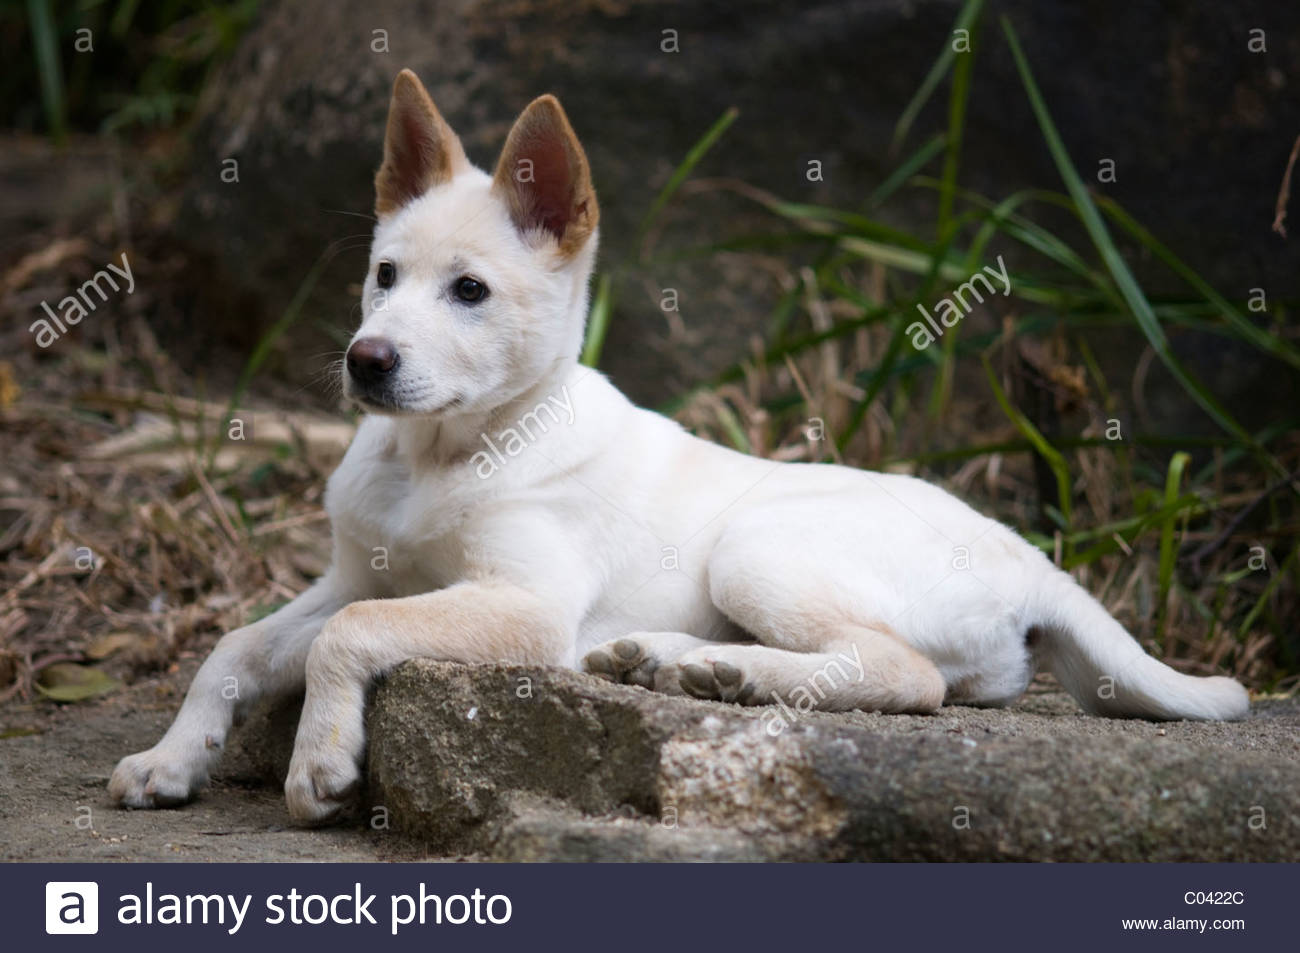 A four month old Shiba Inu cross breed puppy. - Stock Image